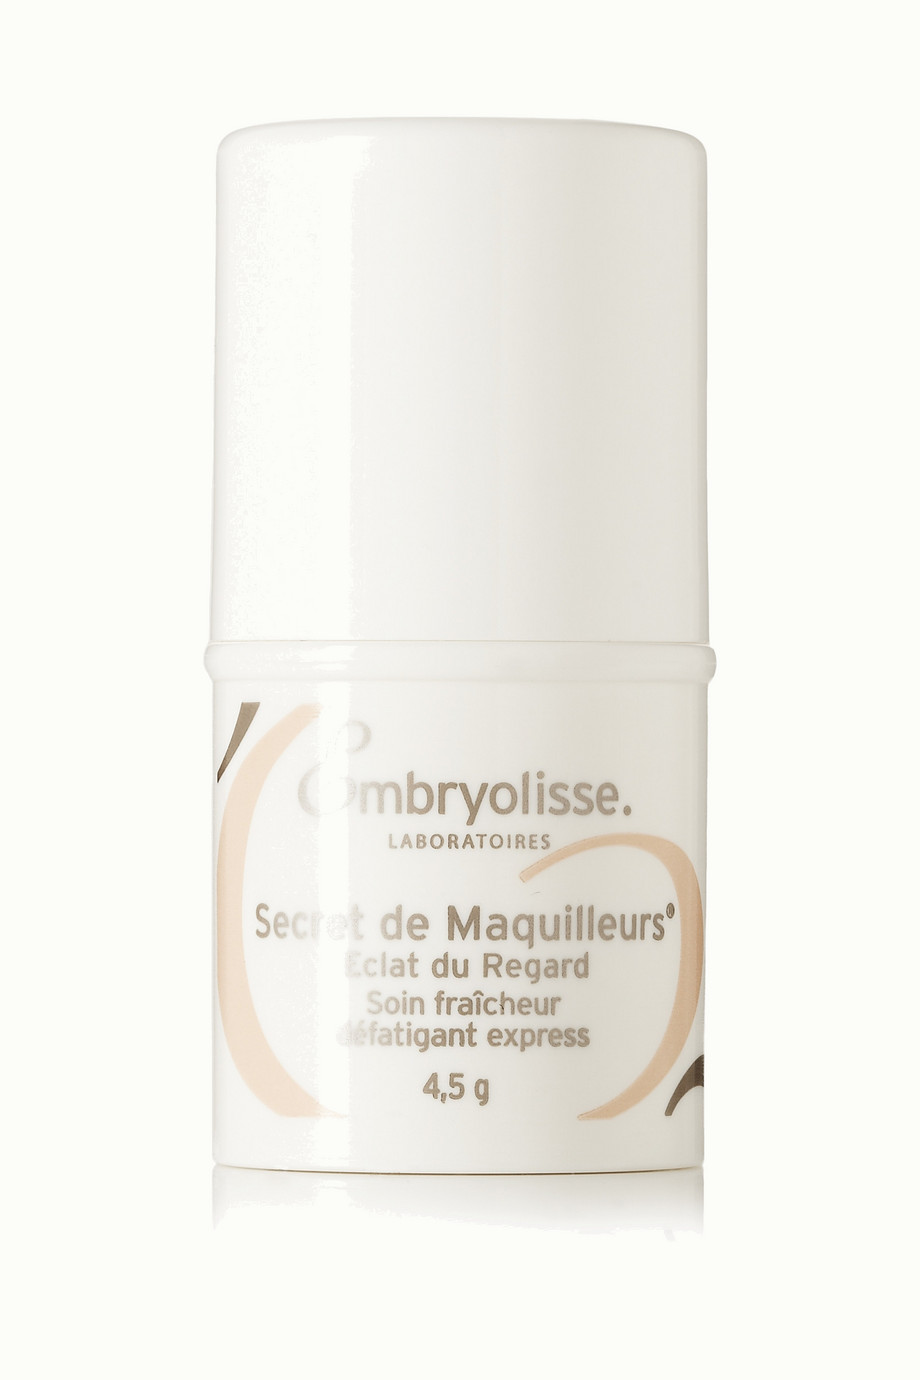 Embryolisse Eclat Du Regard Radiant Eye Treatment, 4.5g